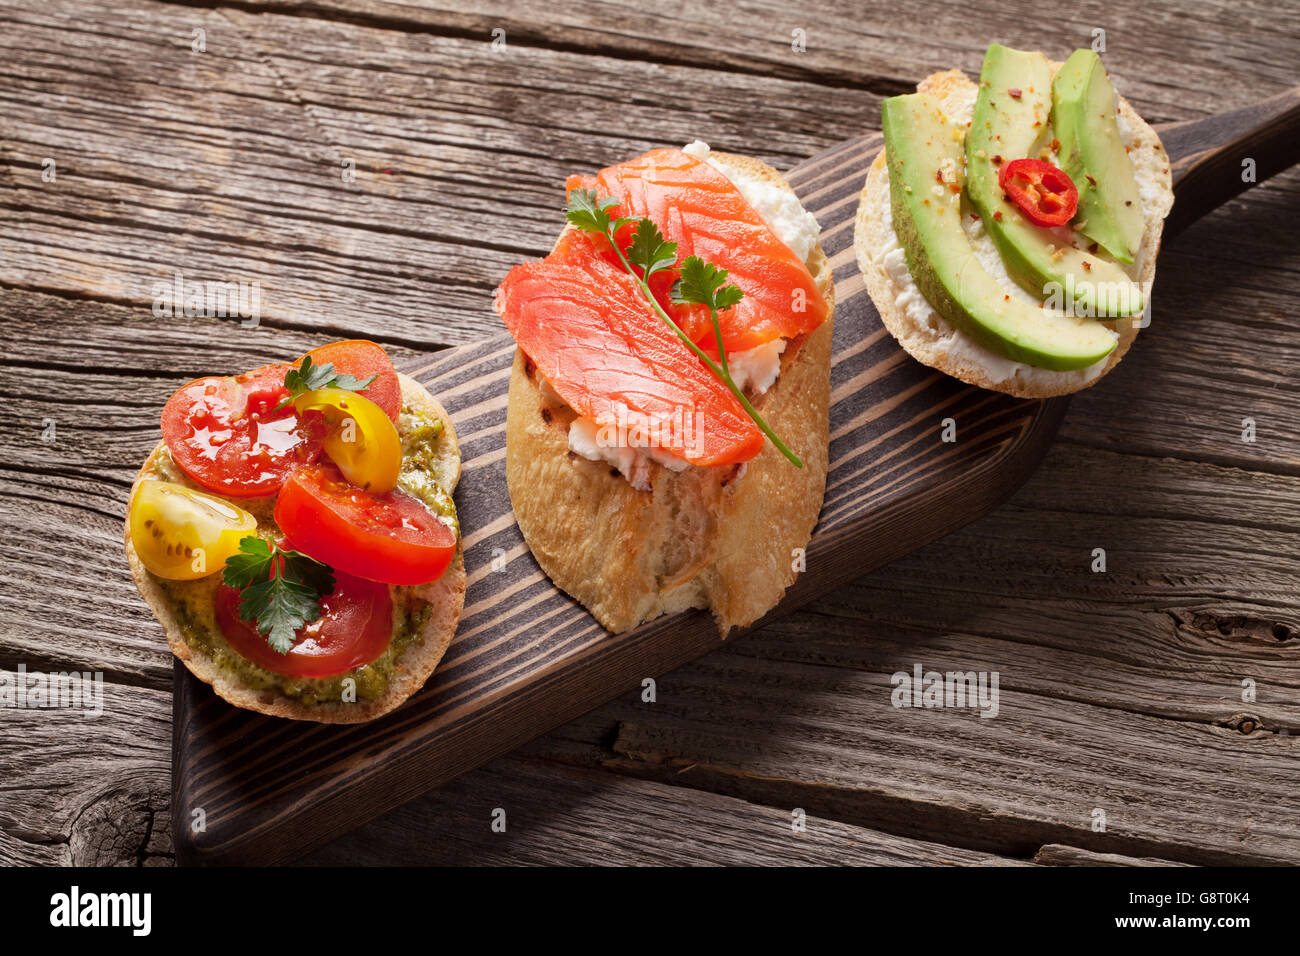 Toast sandwiches with avocado, tomatoes and salmon on wooden background - Stock Image